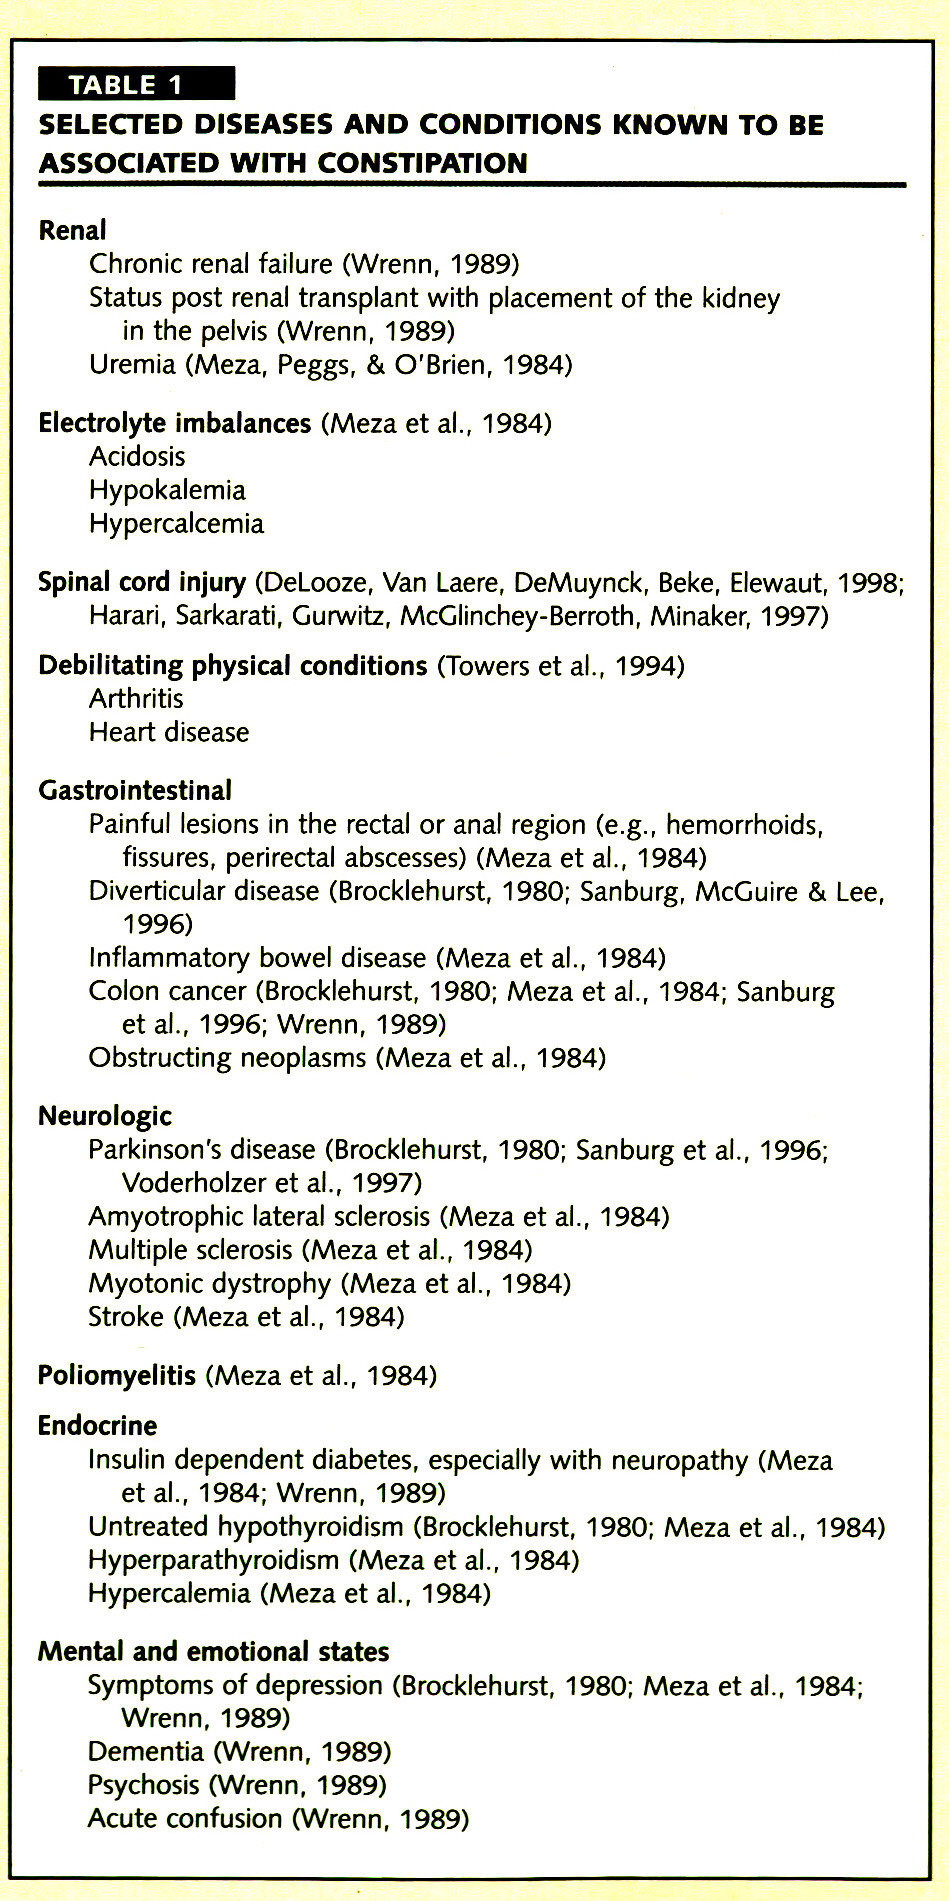 TABLE 1SELECTED DISEASES AND CONDITIONS KNOWN TO BE ASSOCIATED WITH CONSTIPATION